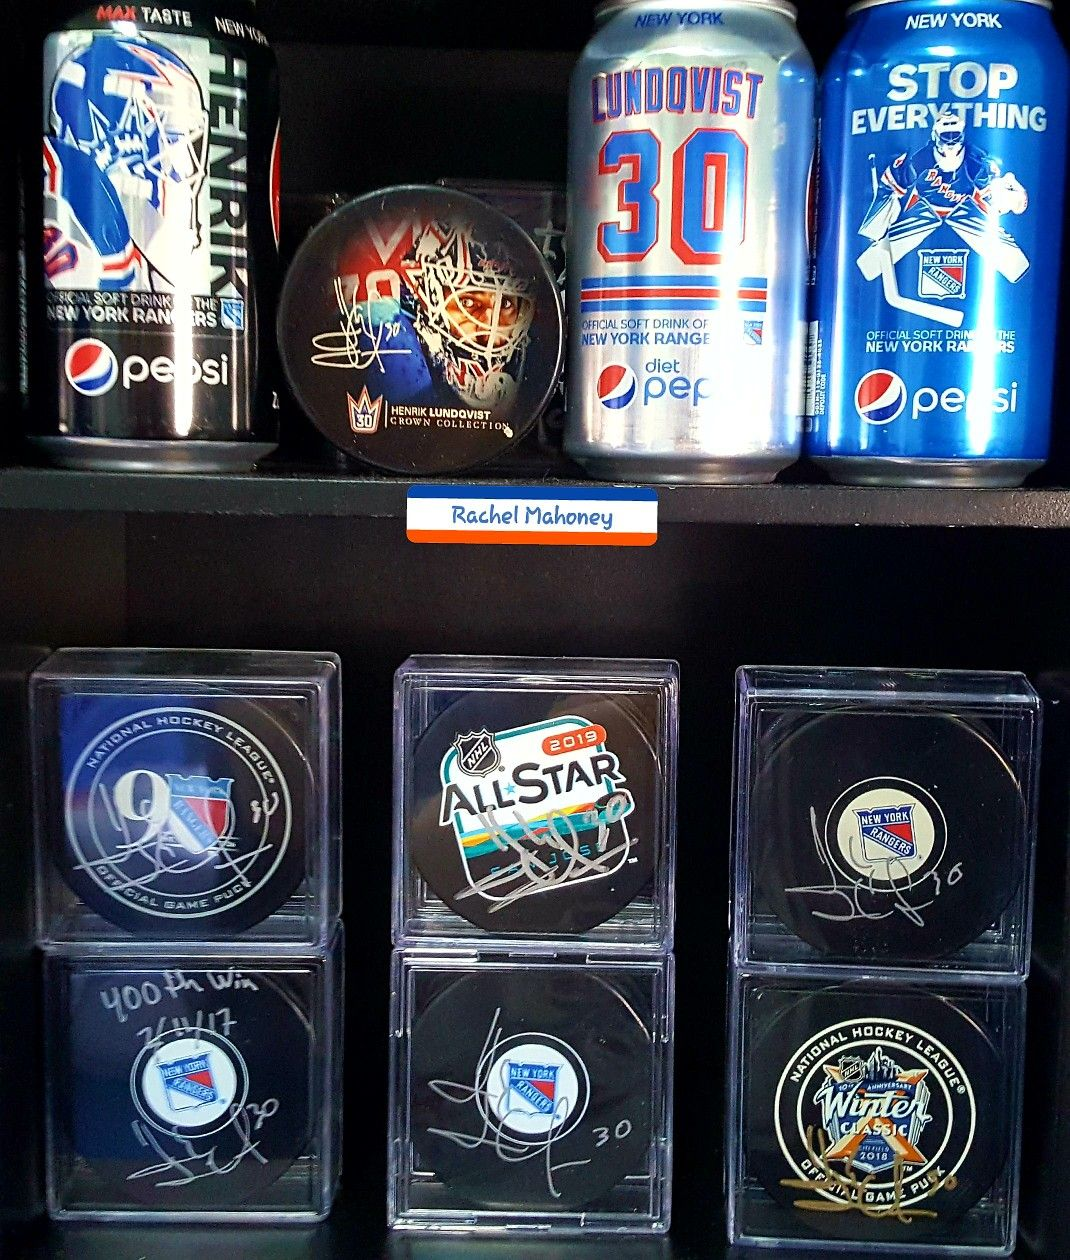 Pin By Rachel Mahoney On Lundqvist 4ever Nyr King Energy Drinks